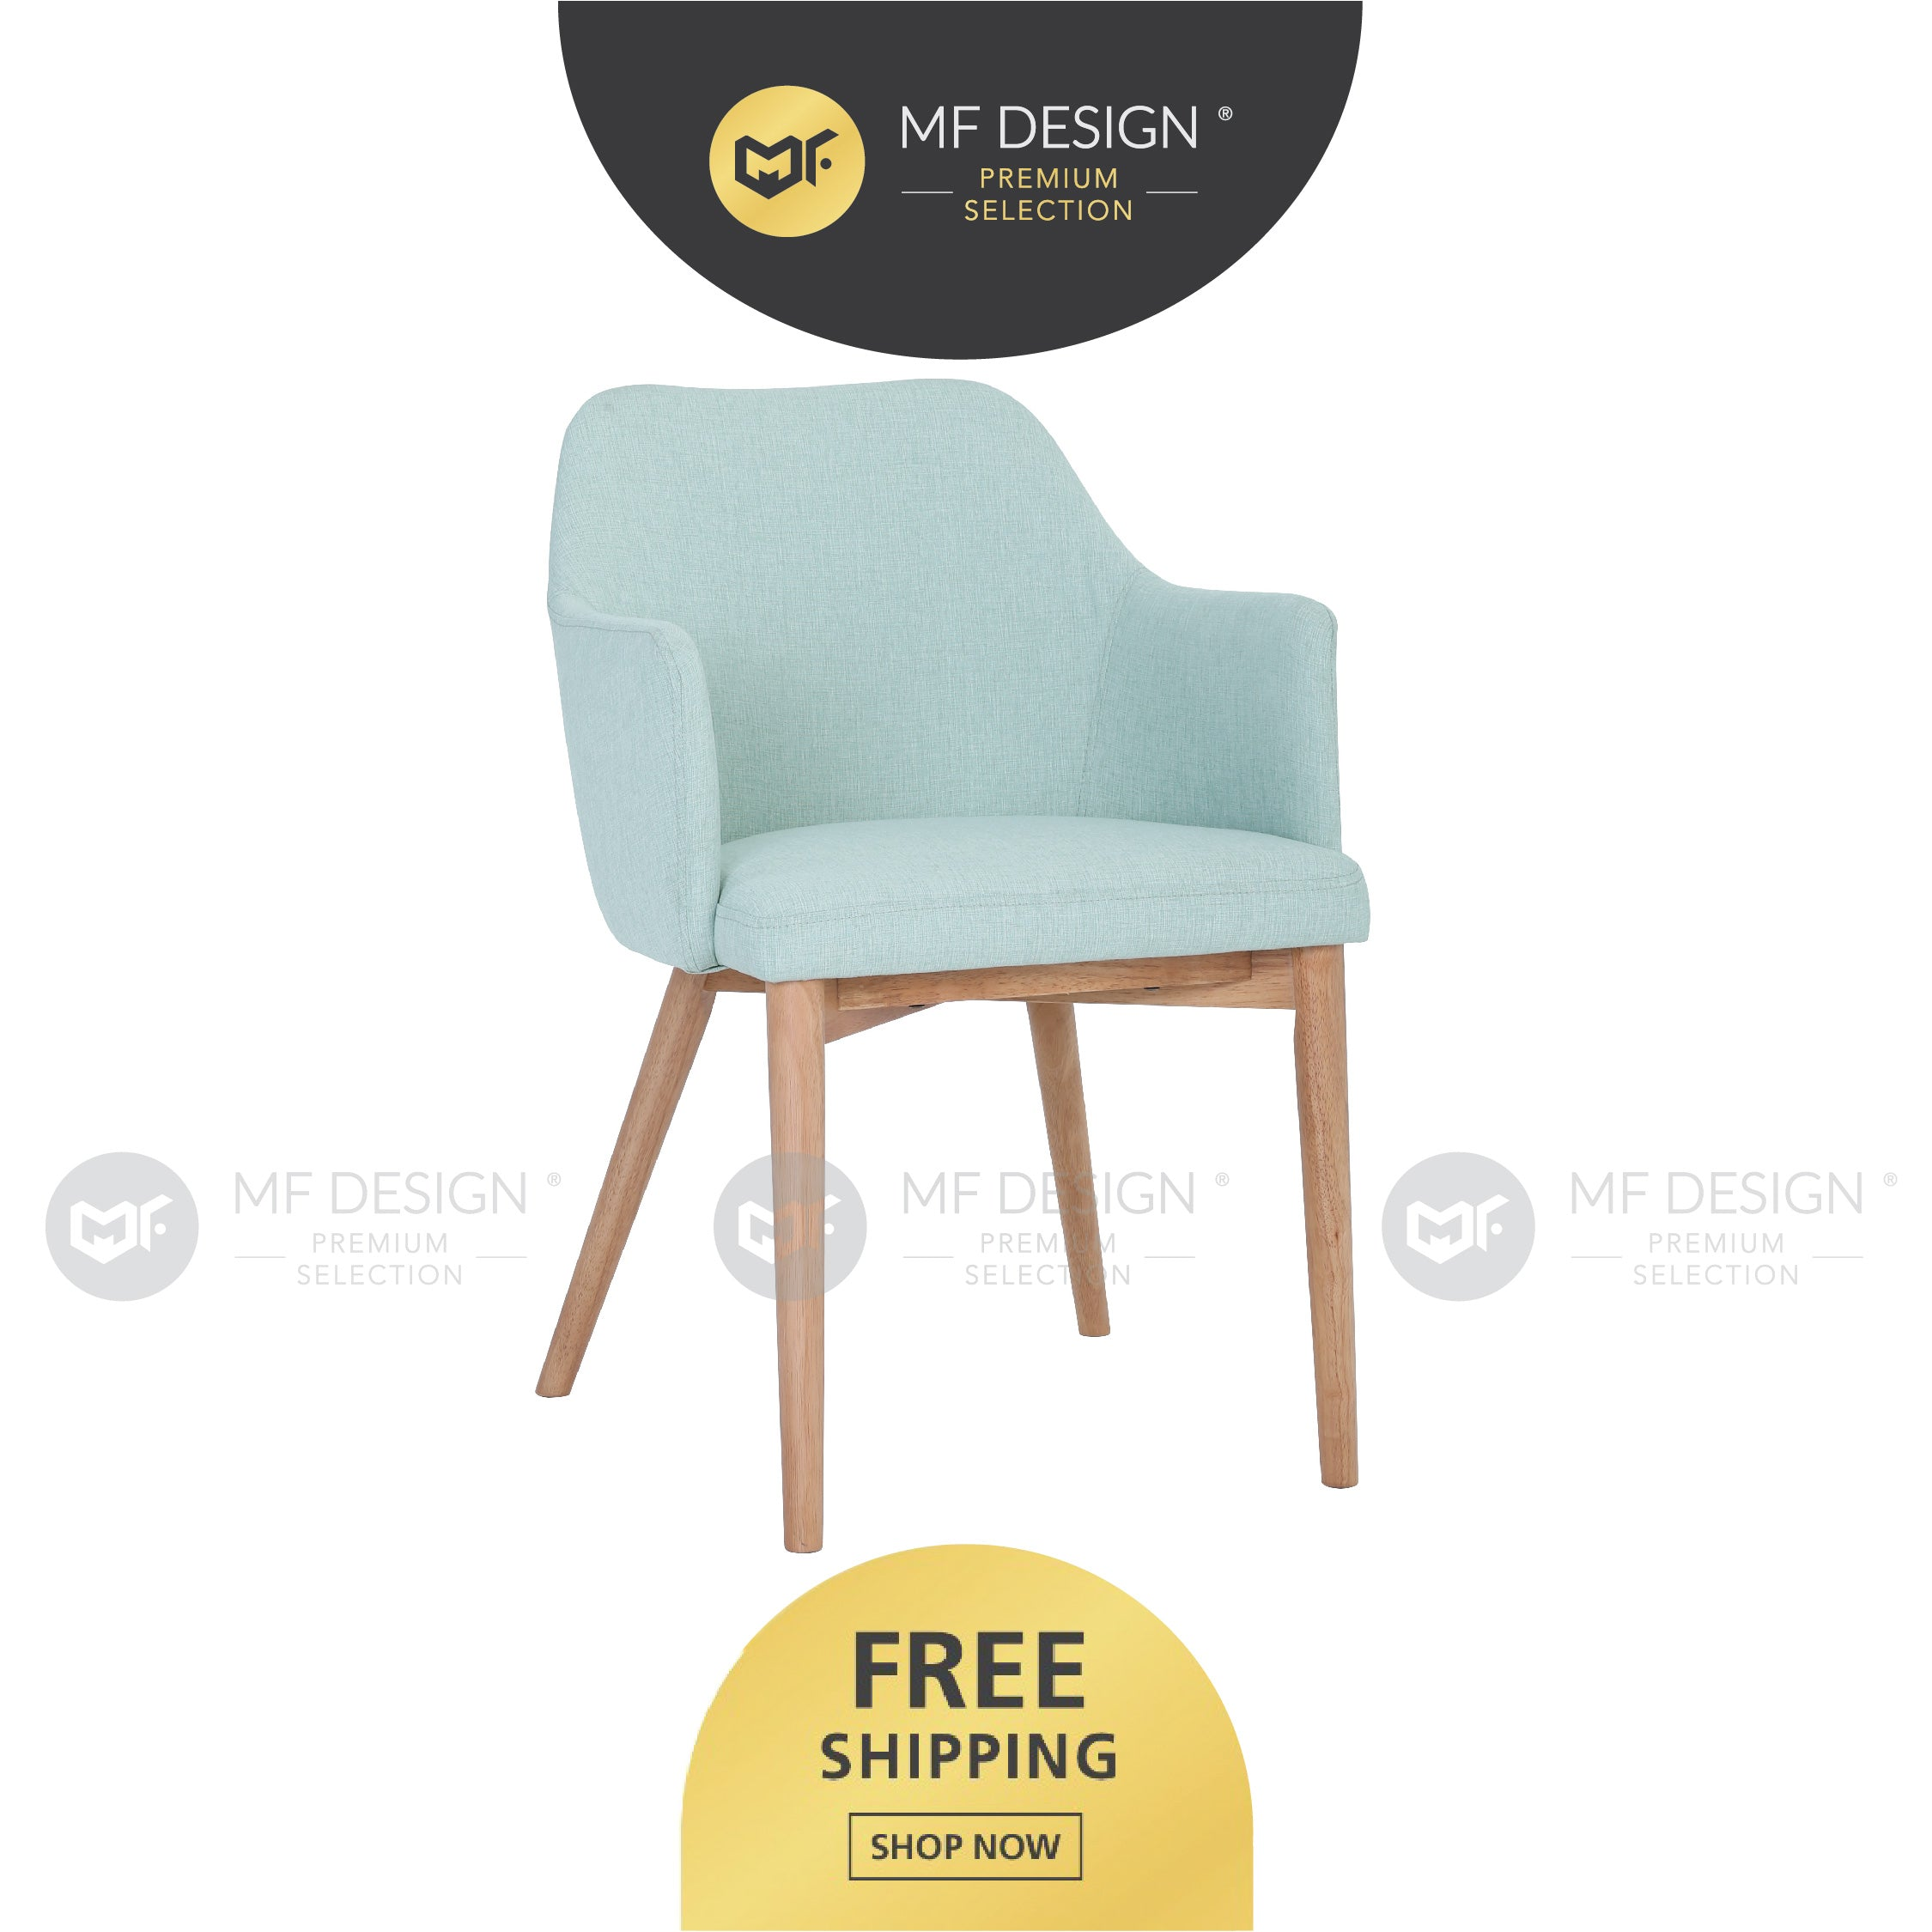 MFD Premium Grace Dining Chair / kerusi / chair